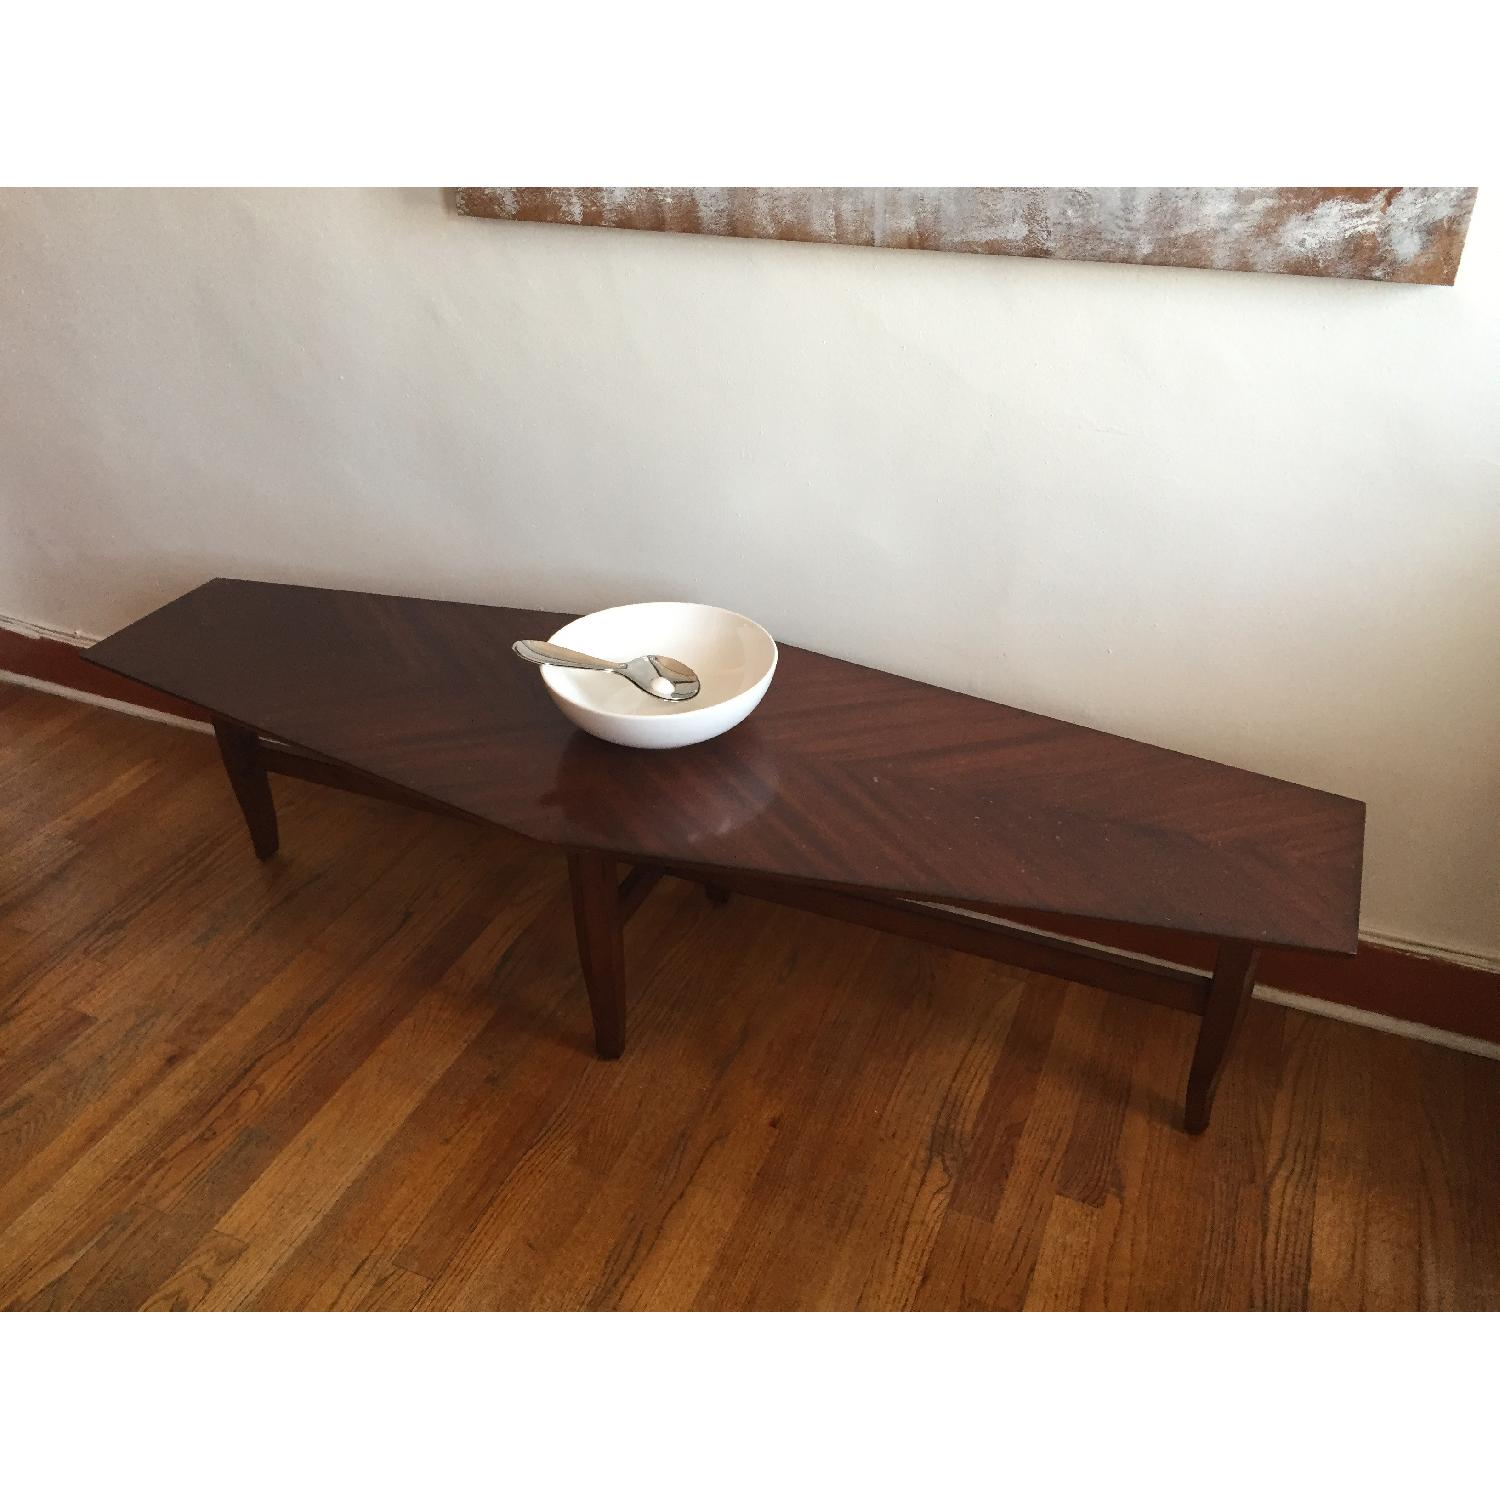 Mitchell Gold + Bob Williams Surfboard Coffee Table - image-5